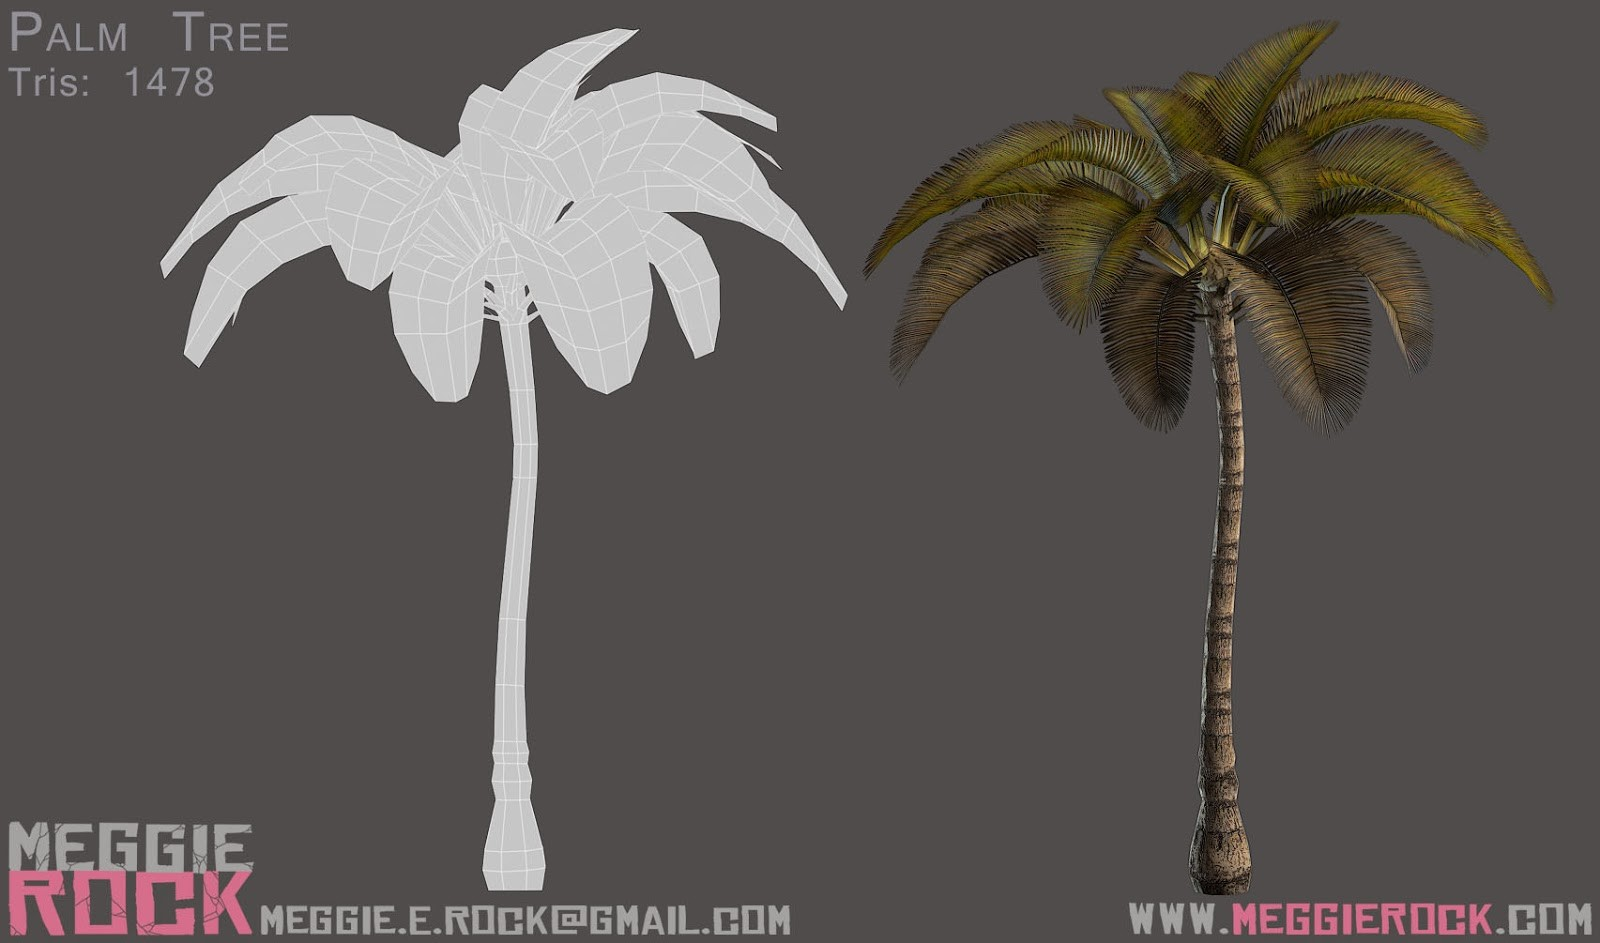 Meggie rock palm preview